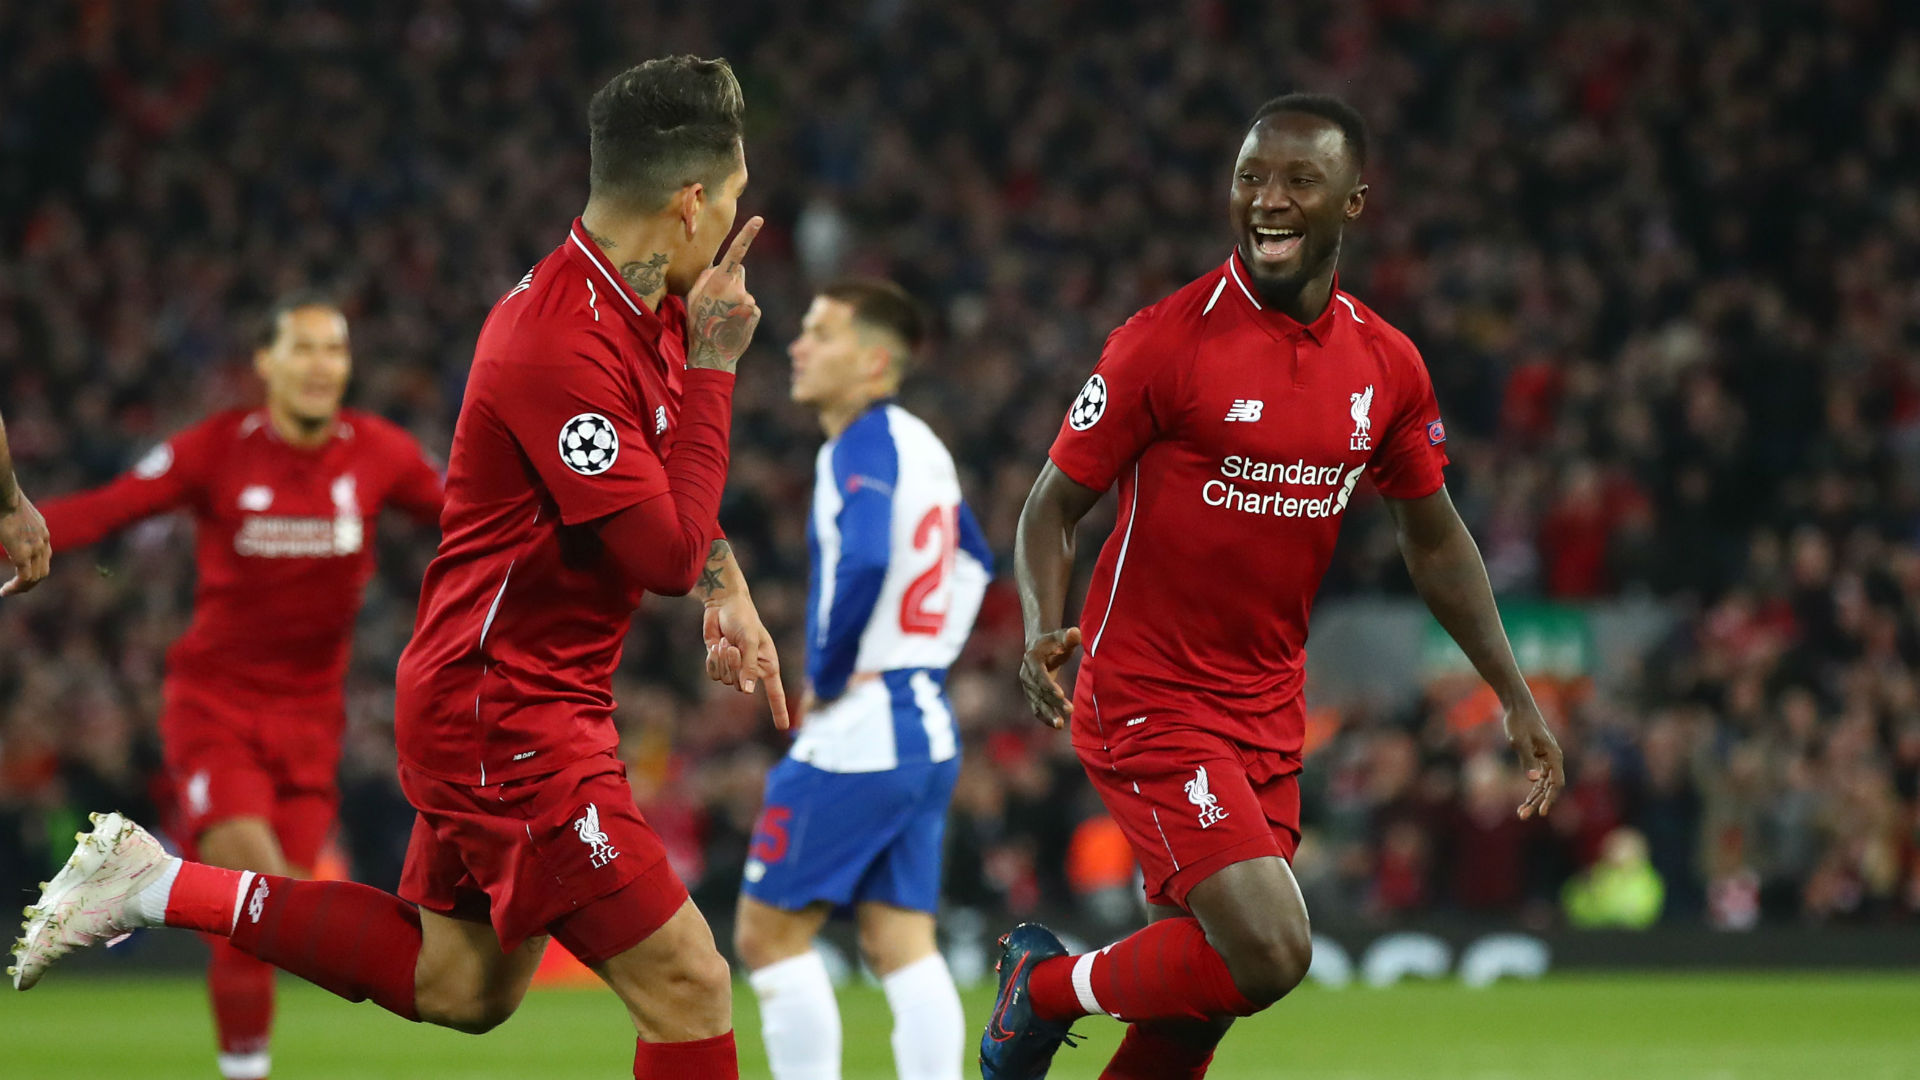 Champions League: Liverpool Ease Past Porto To Claim First